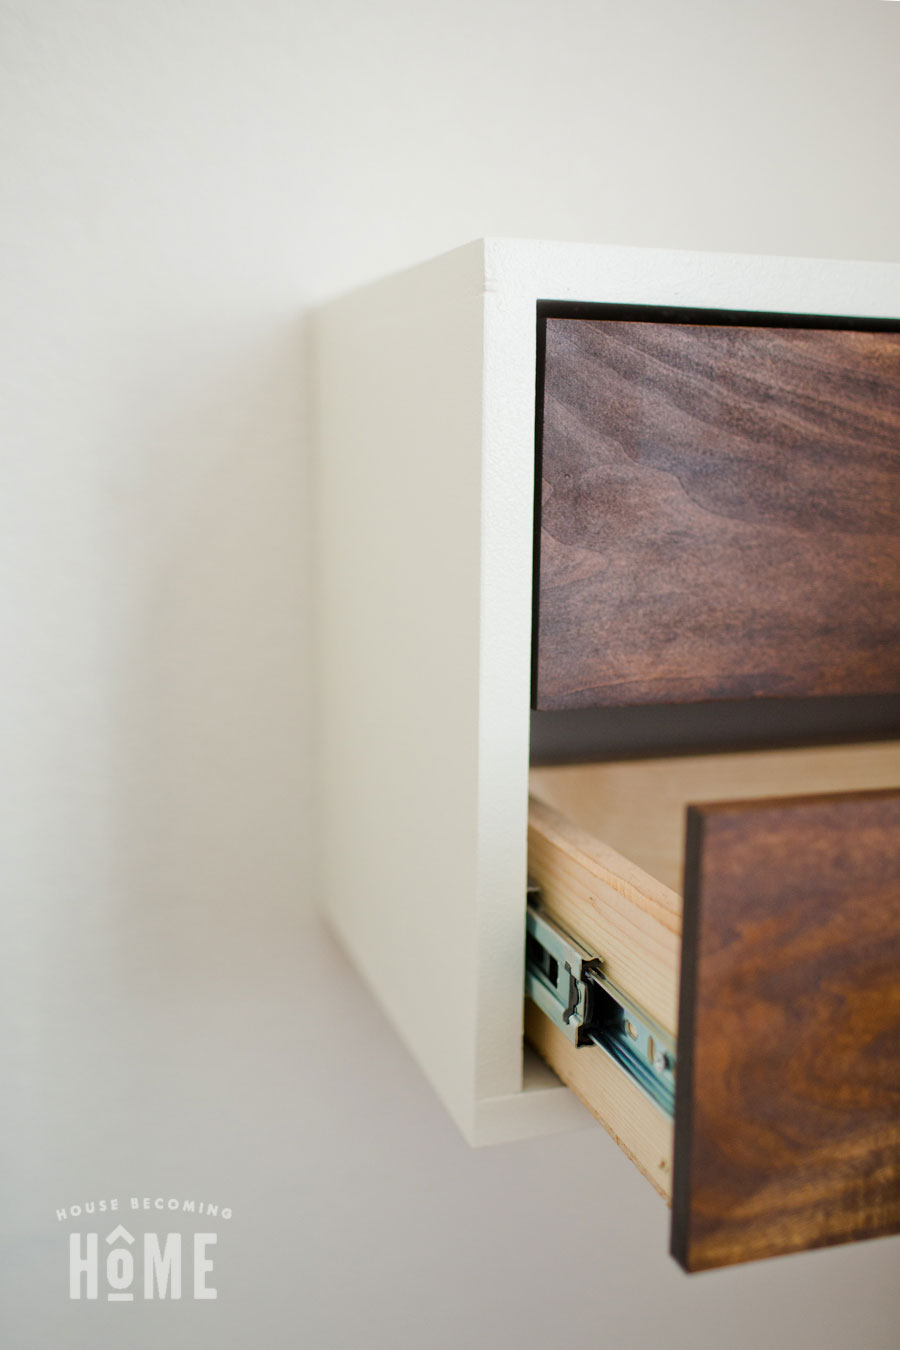 How to Build a Simple DIY Floating Nightstand with Drawers. Includes free printable pdf plans.